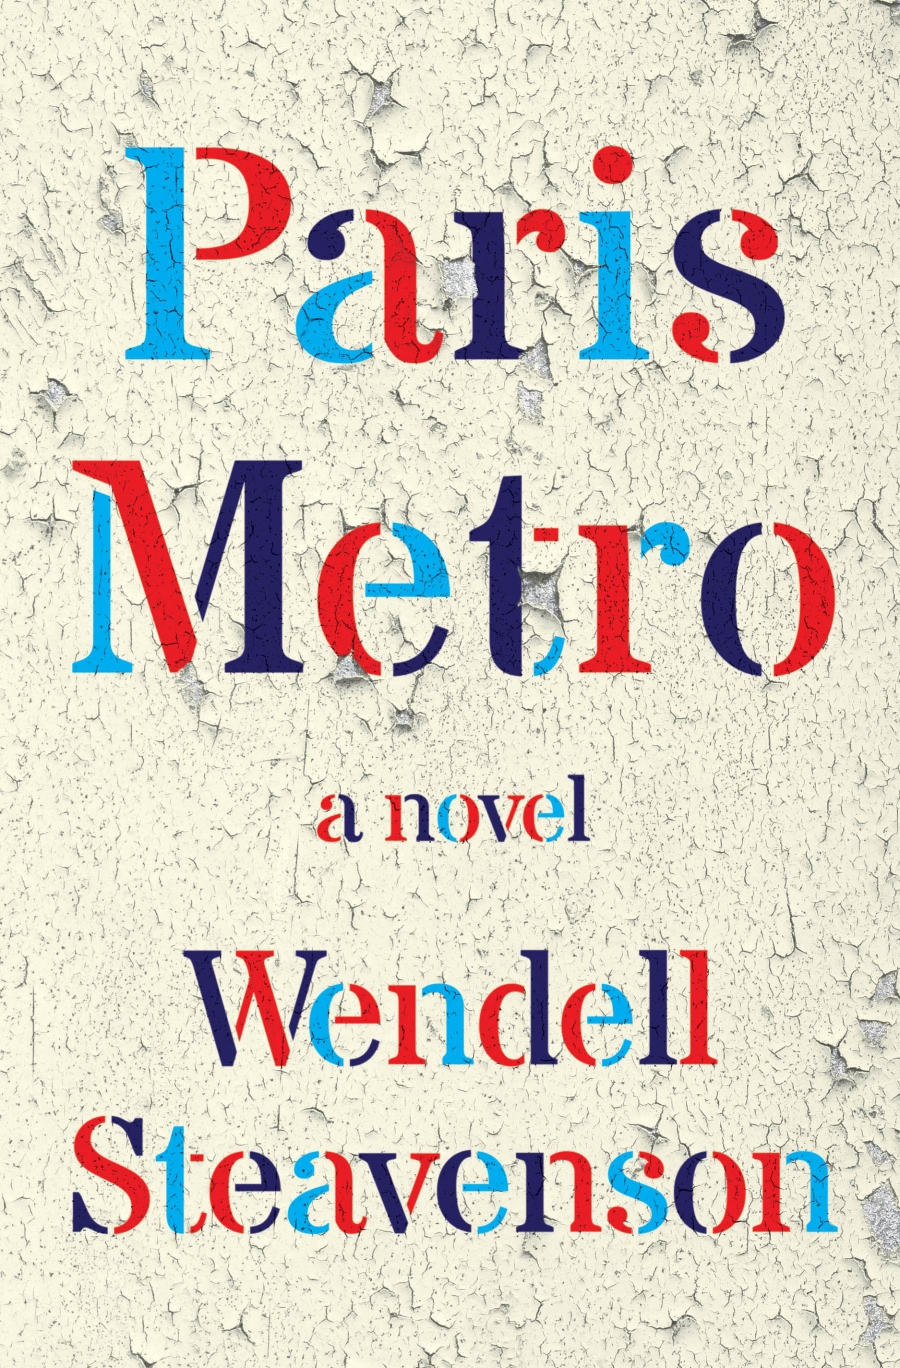 New Yorker writer Wendell Steavenson's debut novel.